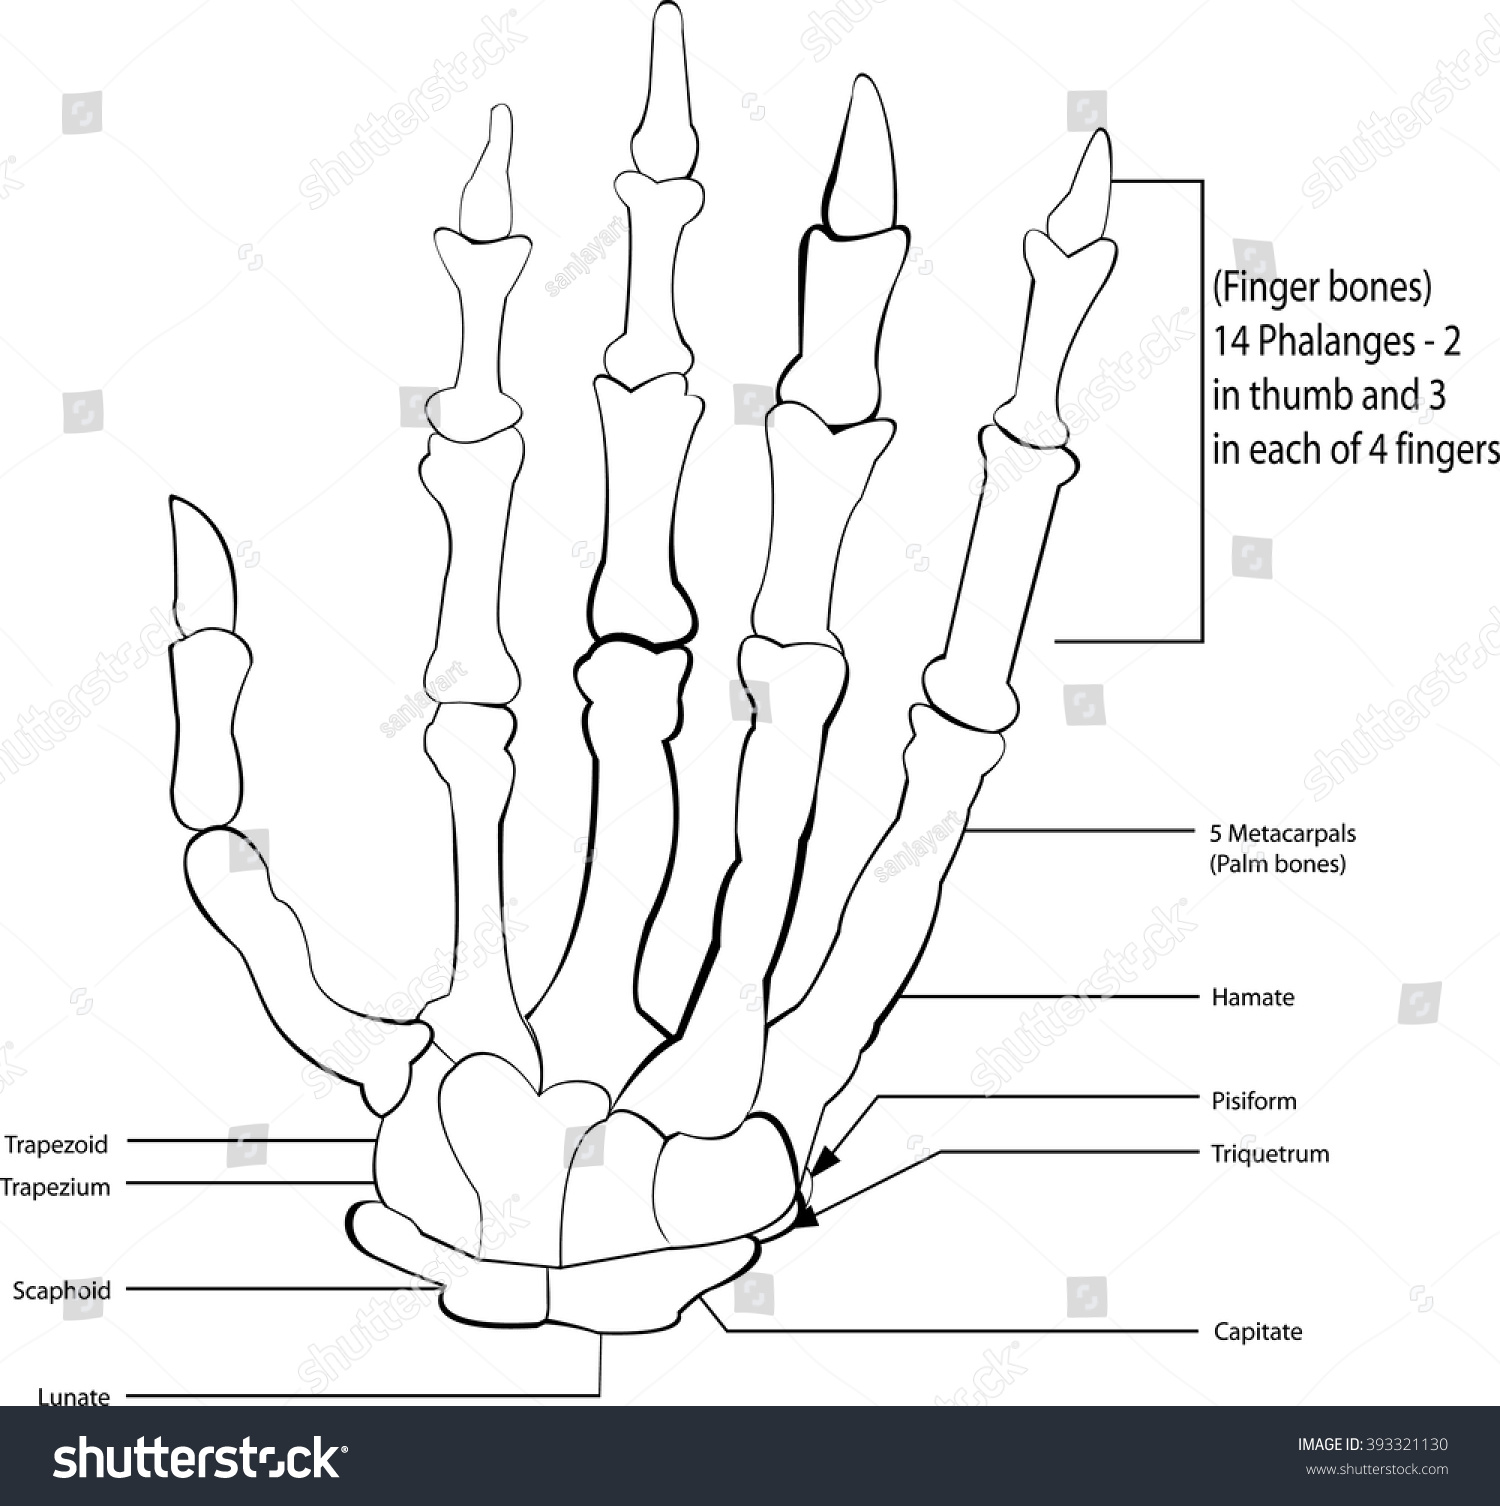 Bones Wrist And Hand Colored Diagram - DIY Enthusiasts Wiring Diagrams •